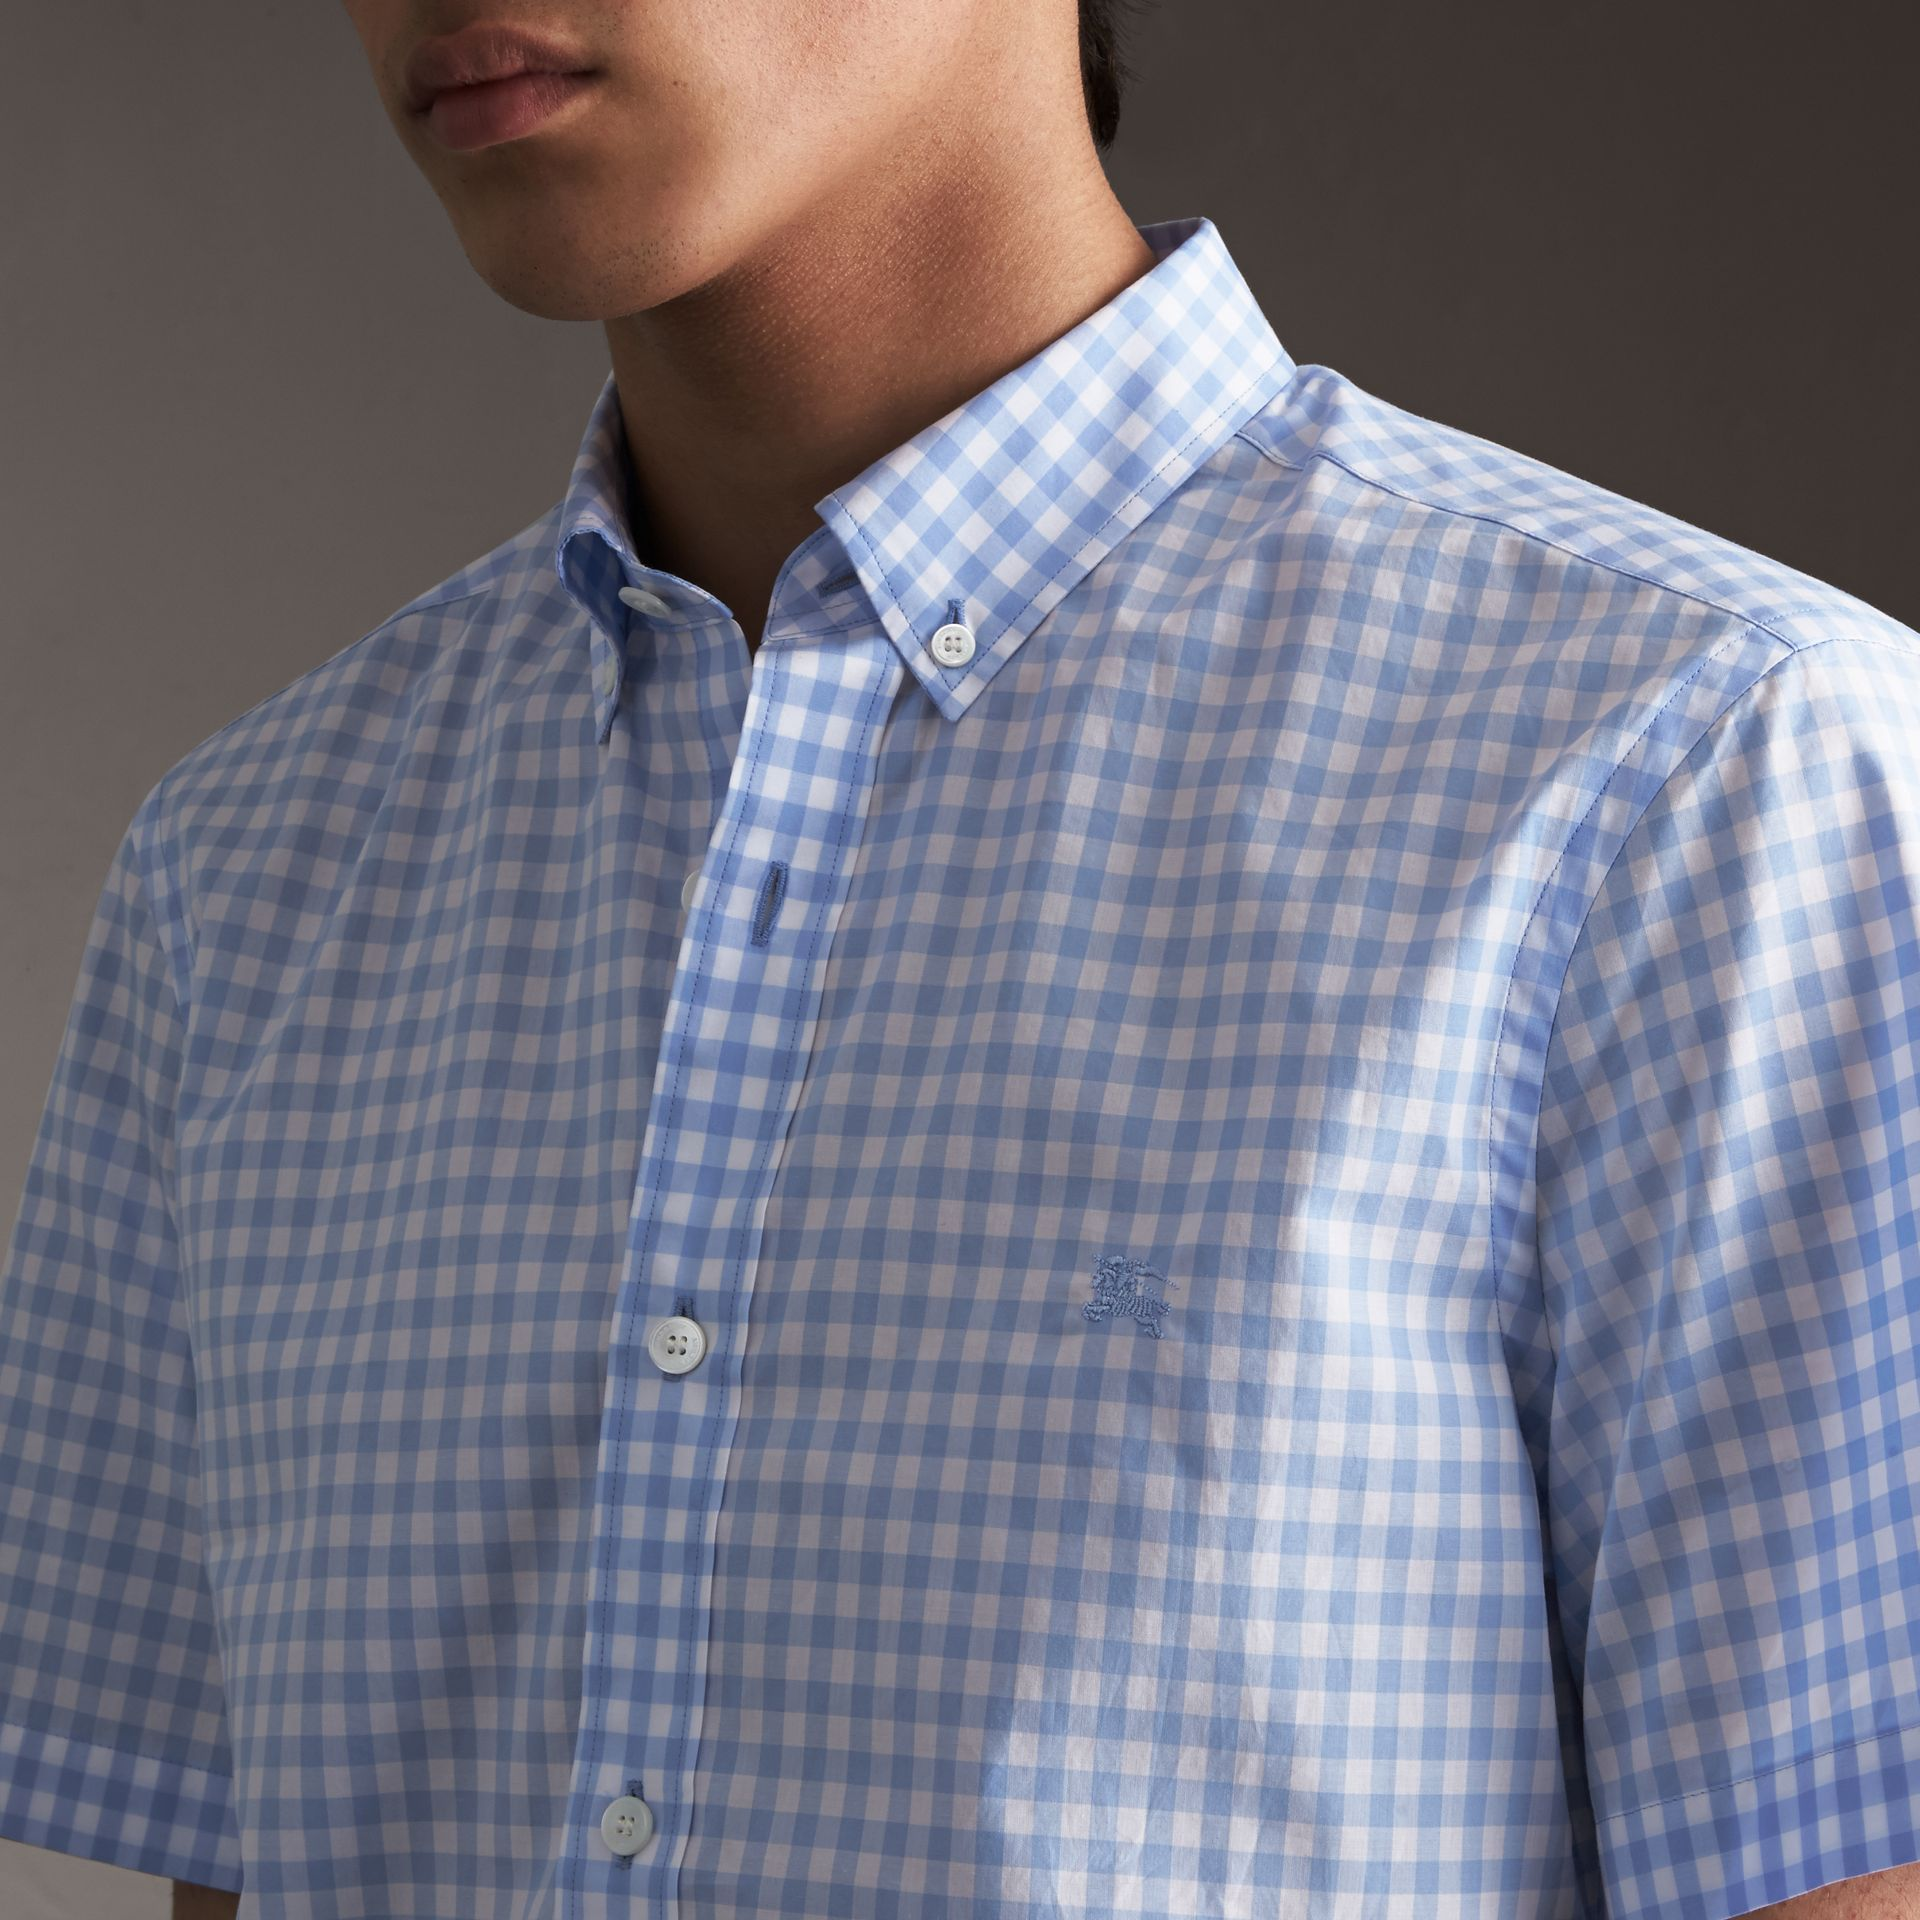 Short-sleeve Button-down Collar Cotton Gingham Shirt in Pale Blue - Men | Burberry Canada - gallery image 1